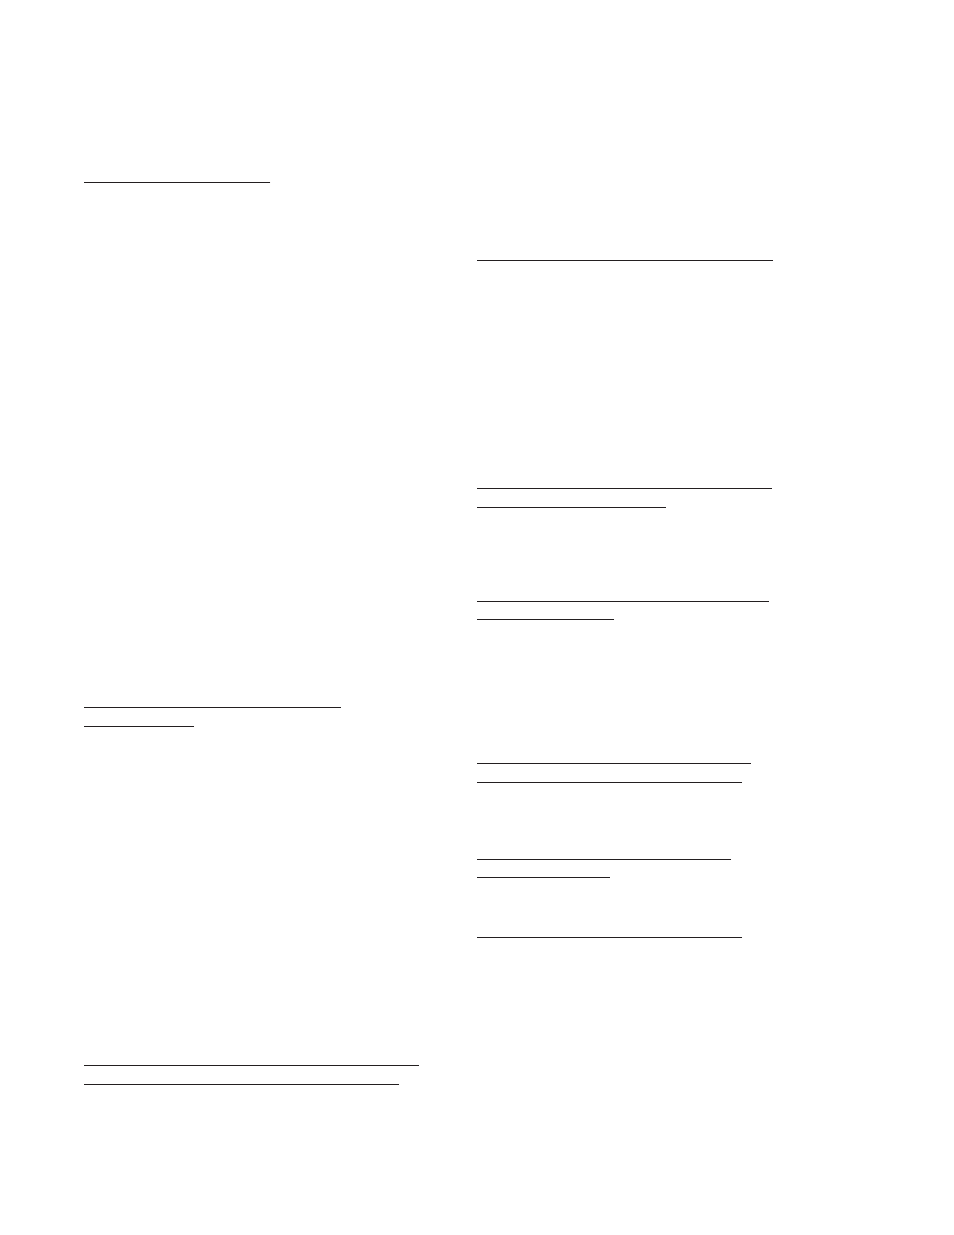 Troubleshooting tables | Winco PSS12H2W/D User Manual | Page